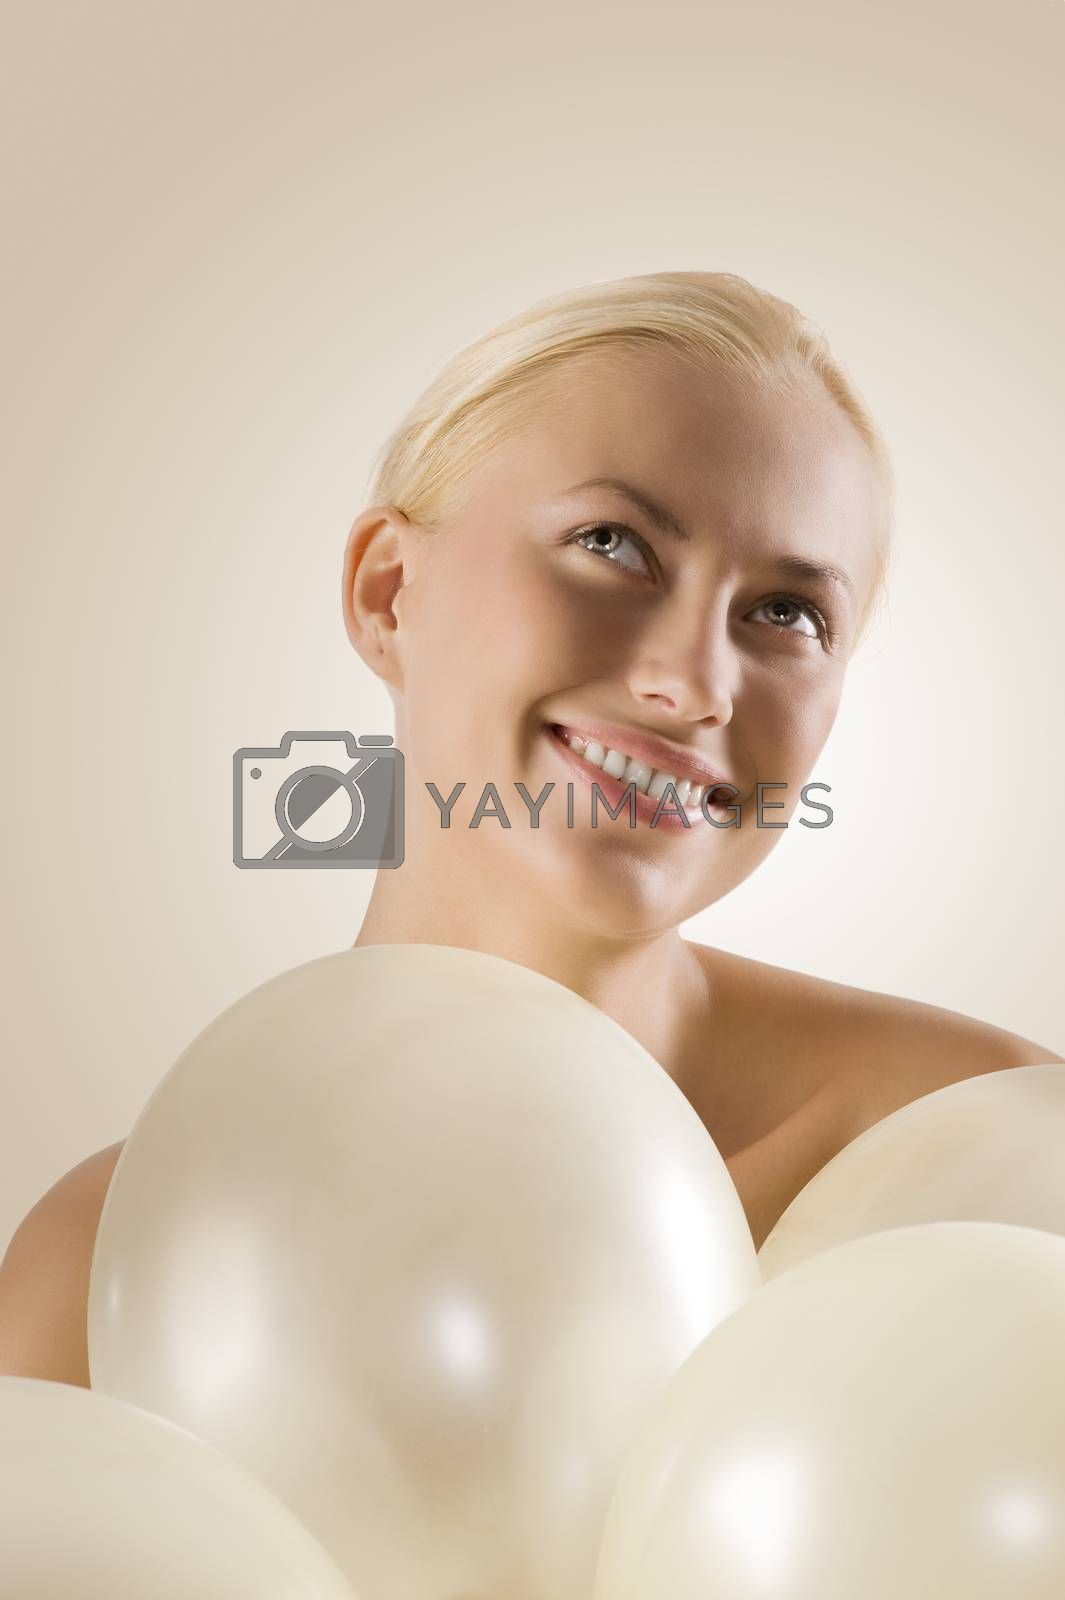 Royalty free image of girl looking up by fotoCD